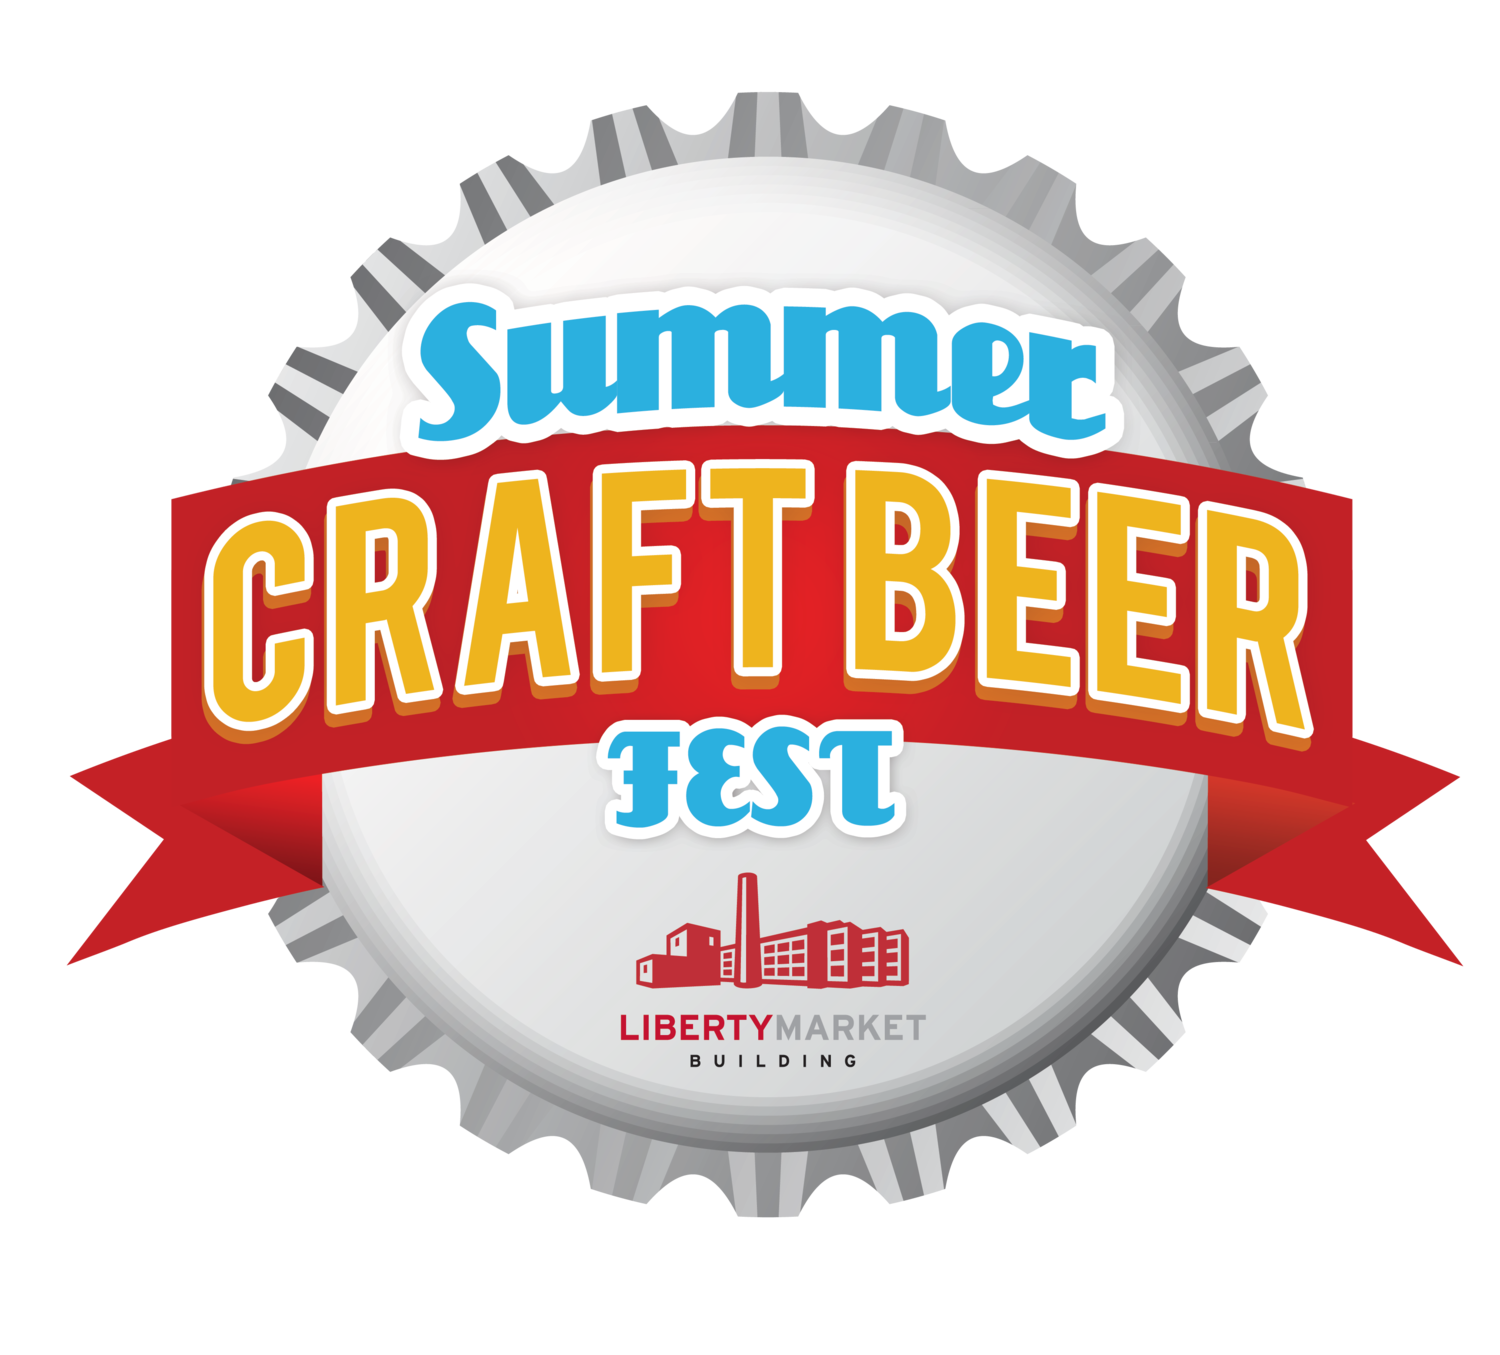 SUMMER CRAFT BEER FEST